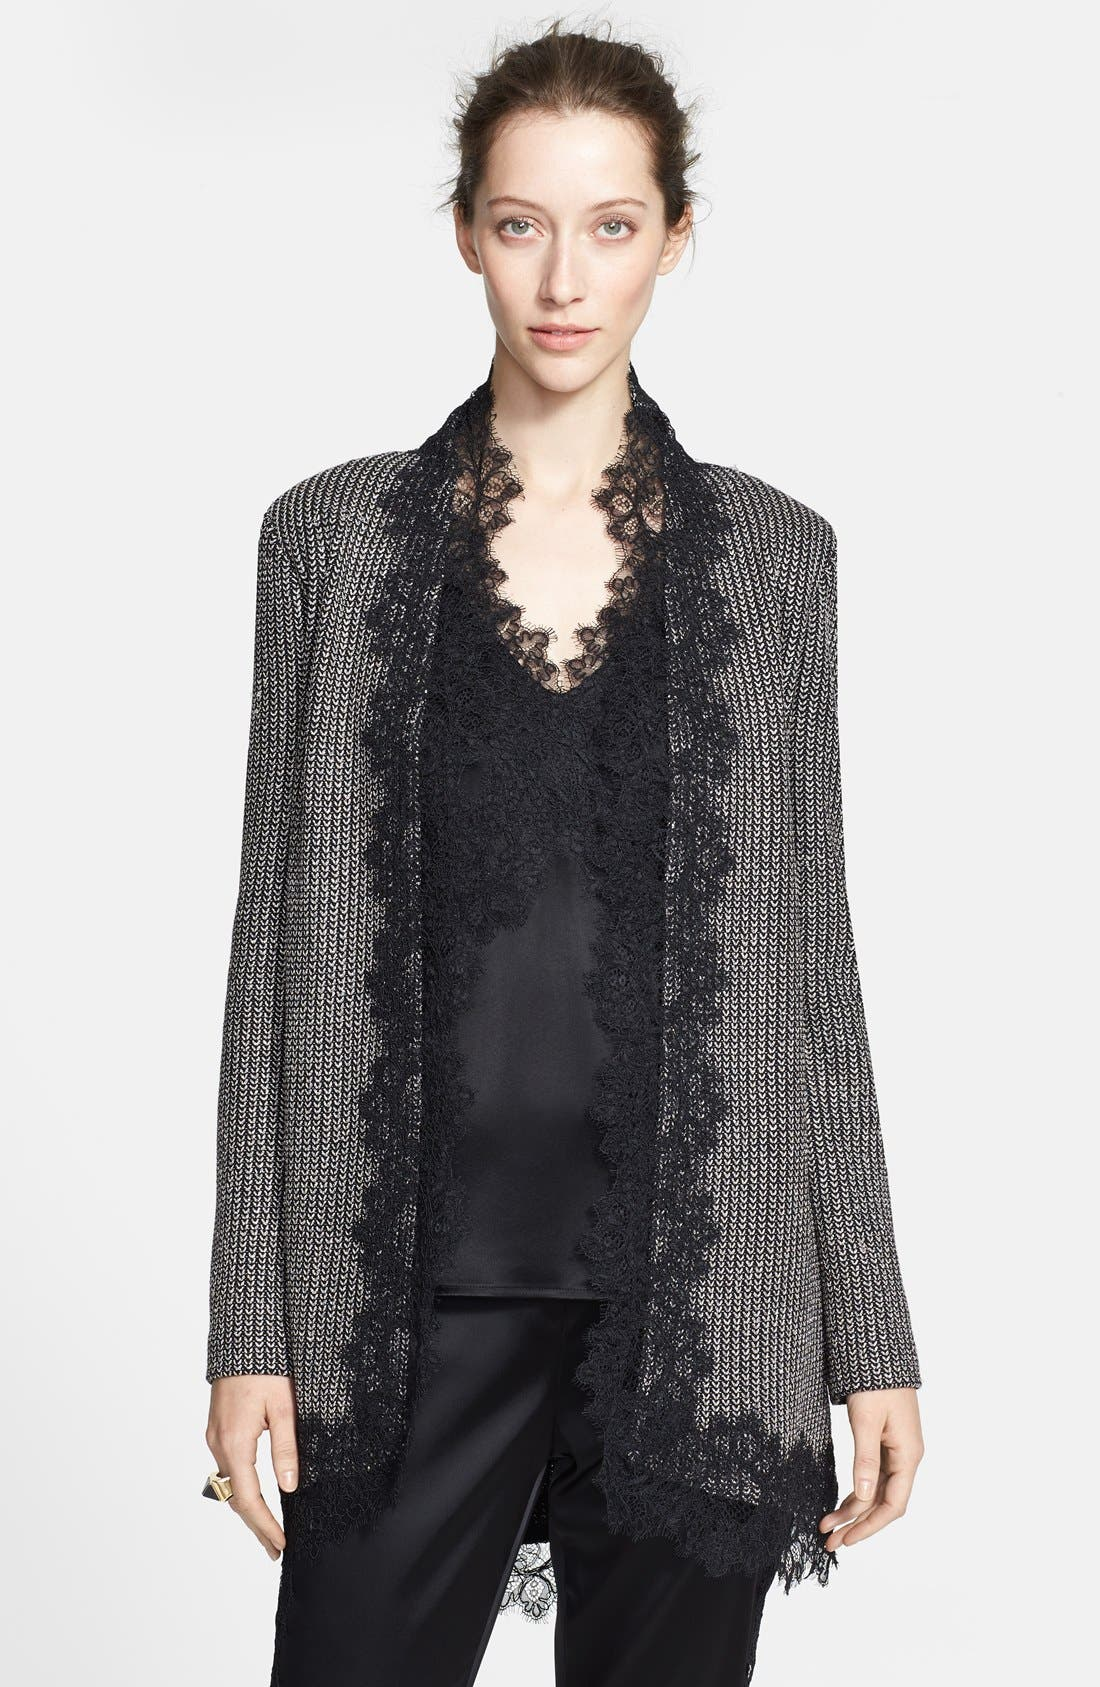 Alternate Image 1 Selected - St. John Collection Lace Trim Metallic Micro Knit Jacket